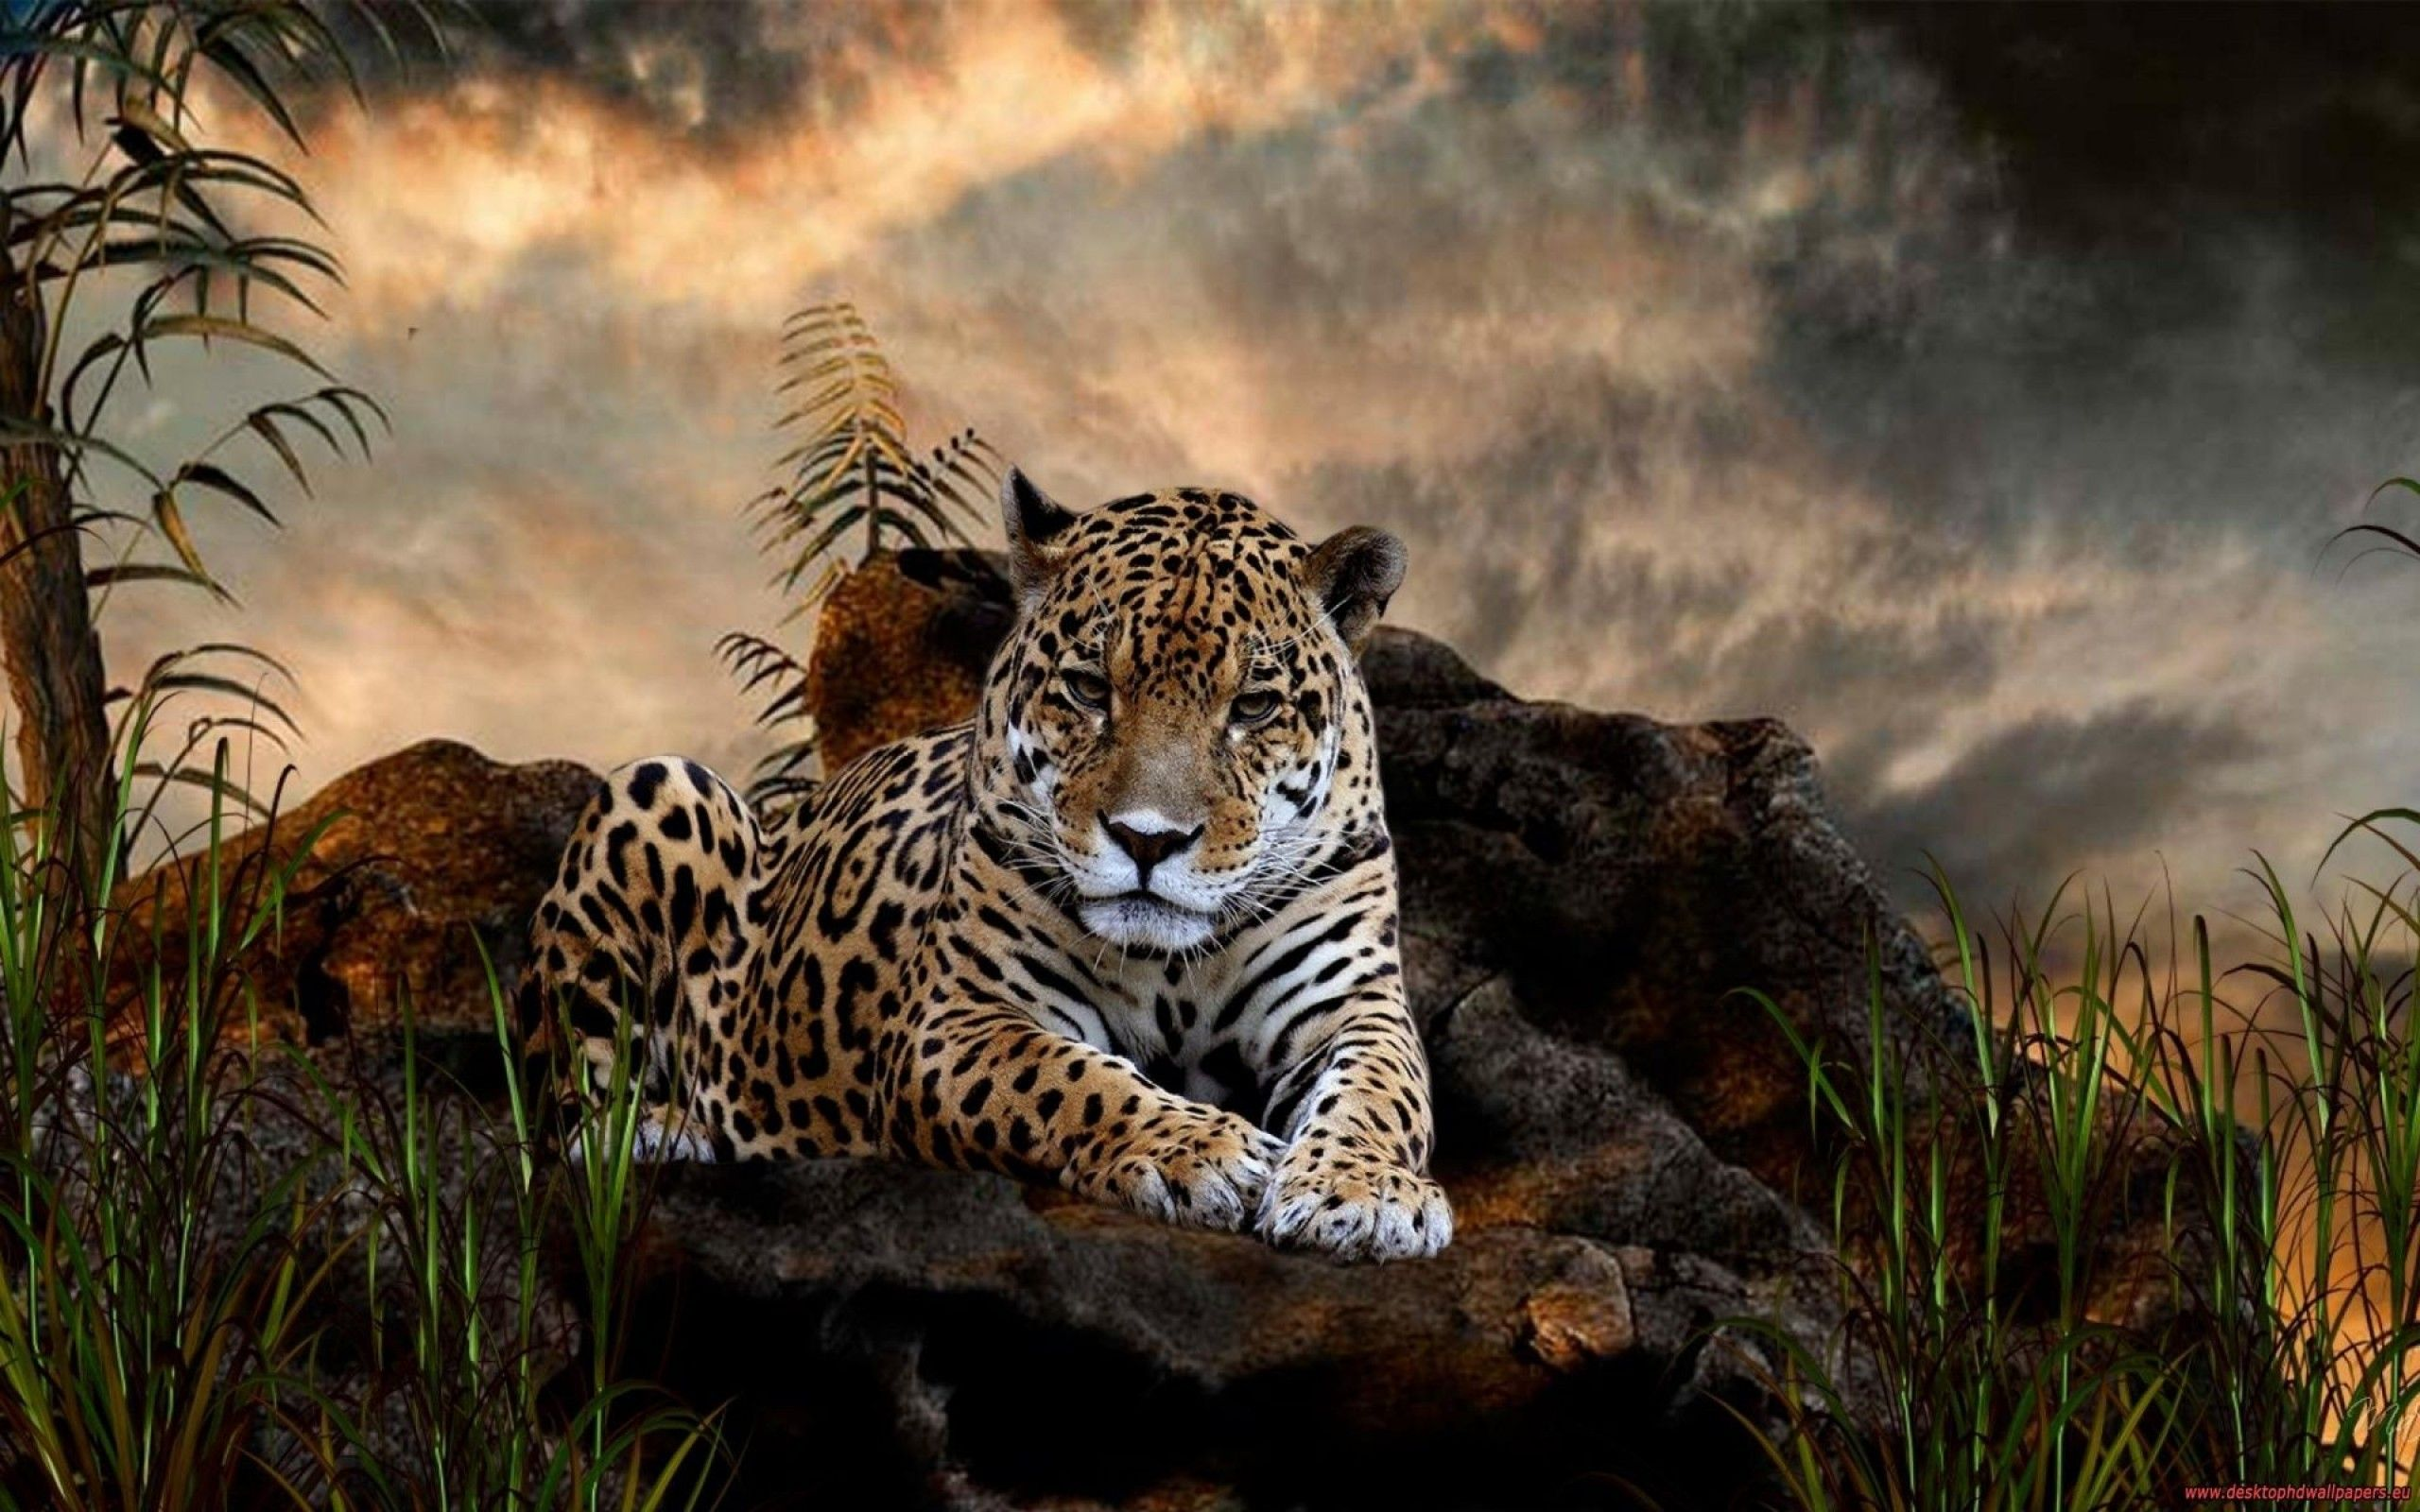 wild animals hd desktop wallpapers | places to visit | pinterest